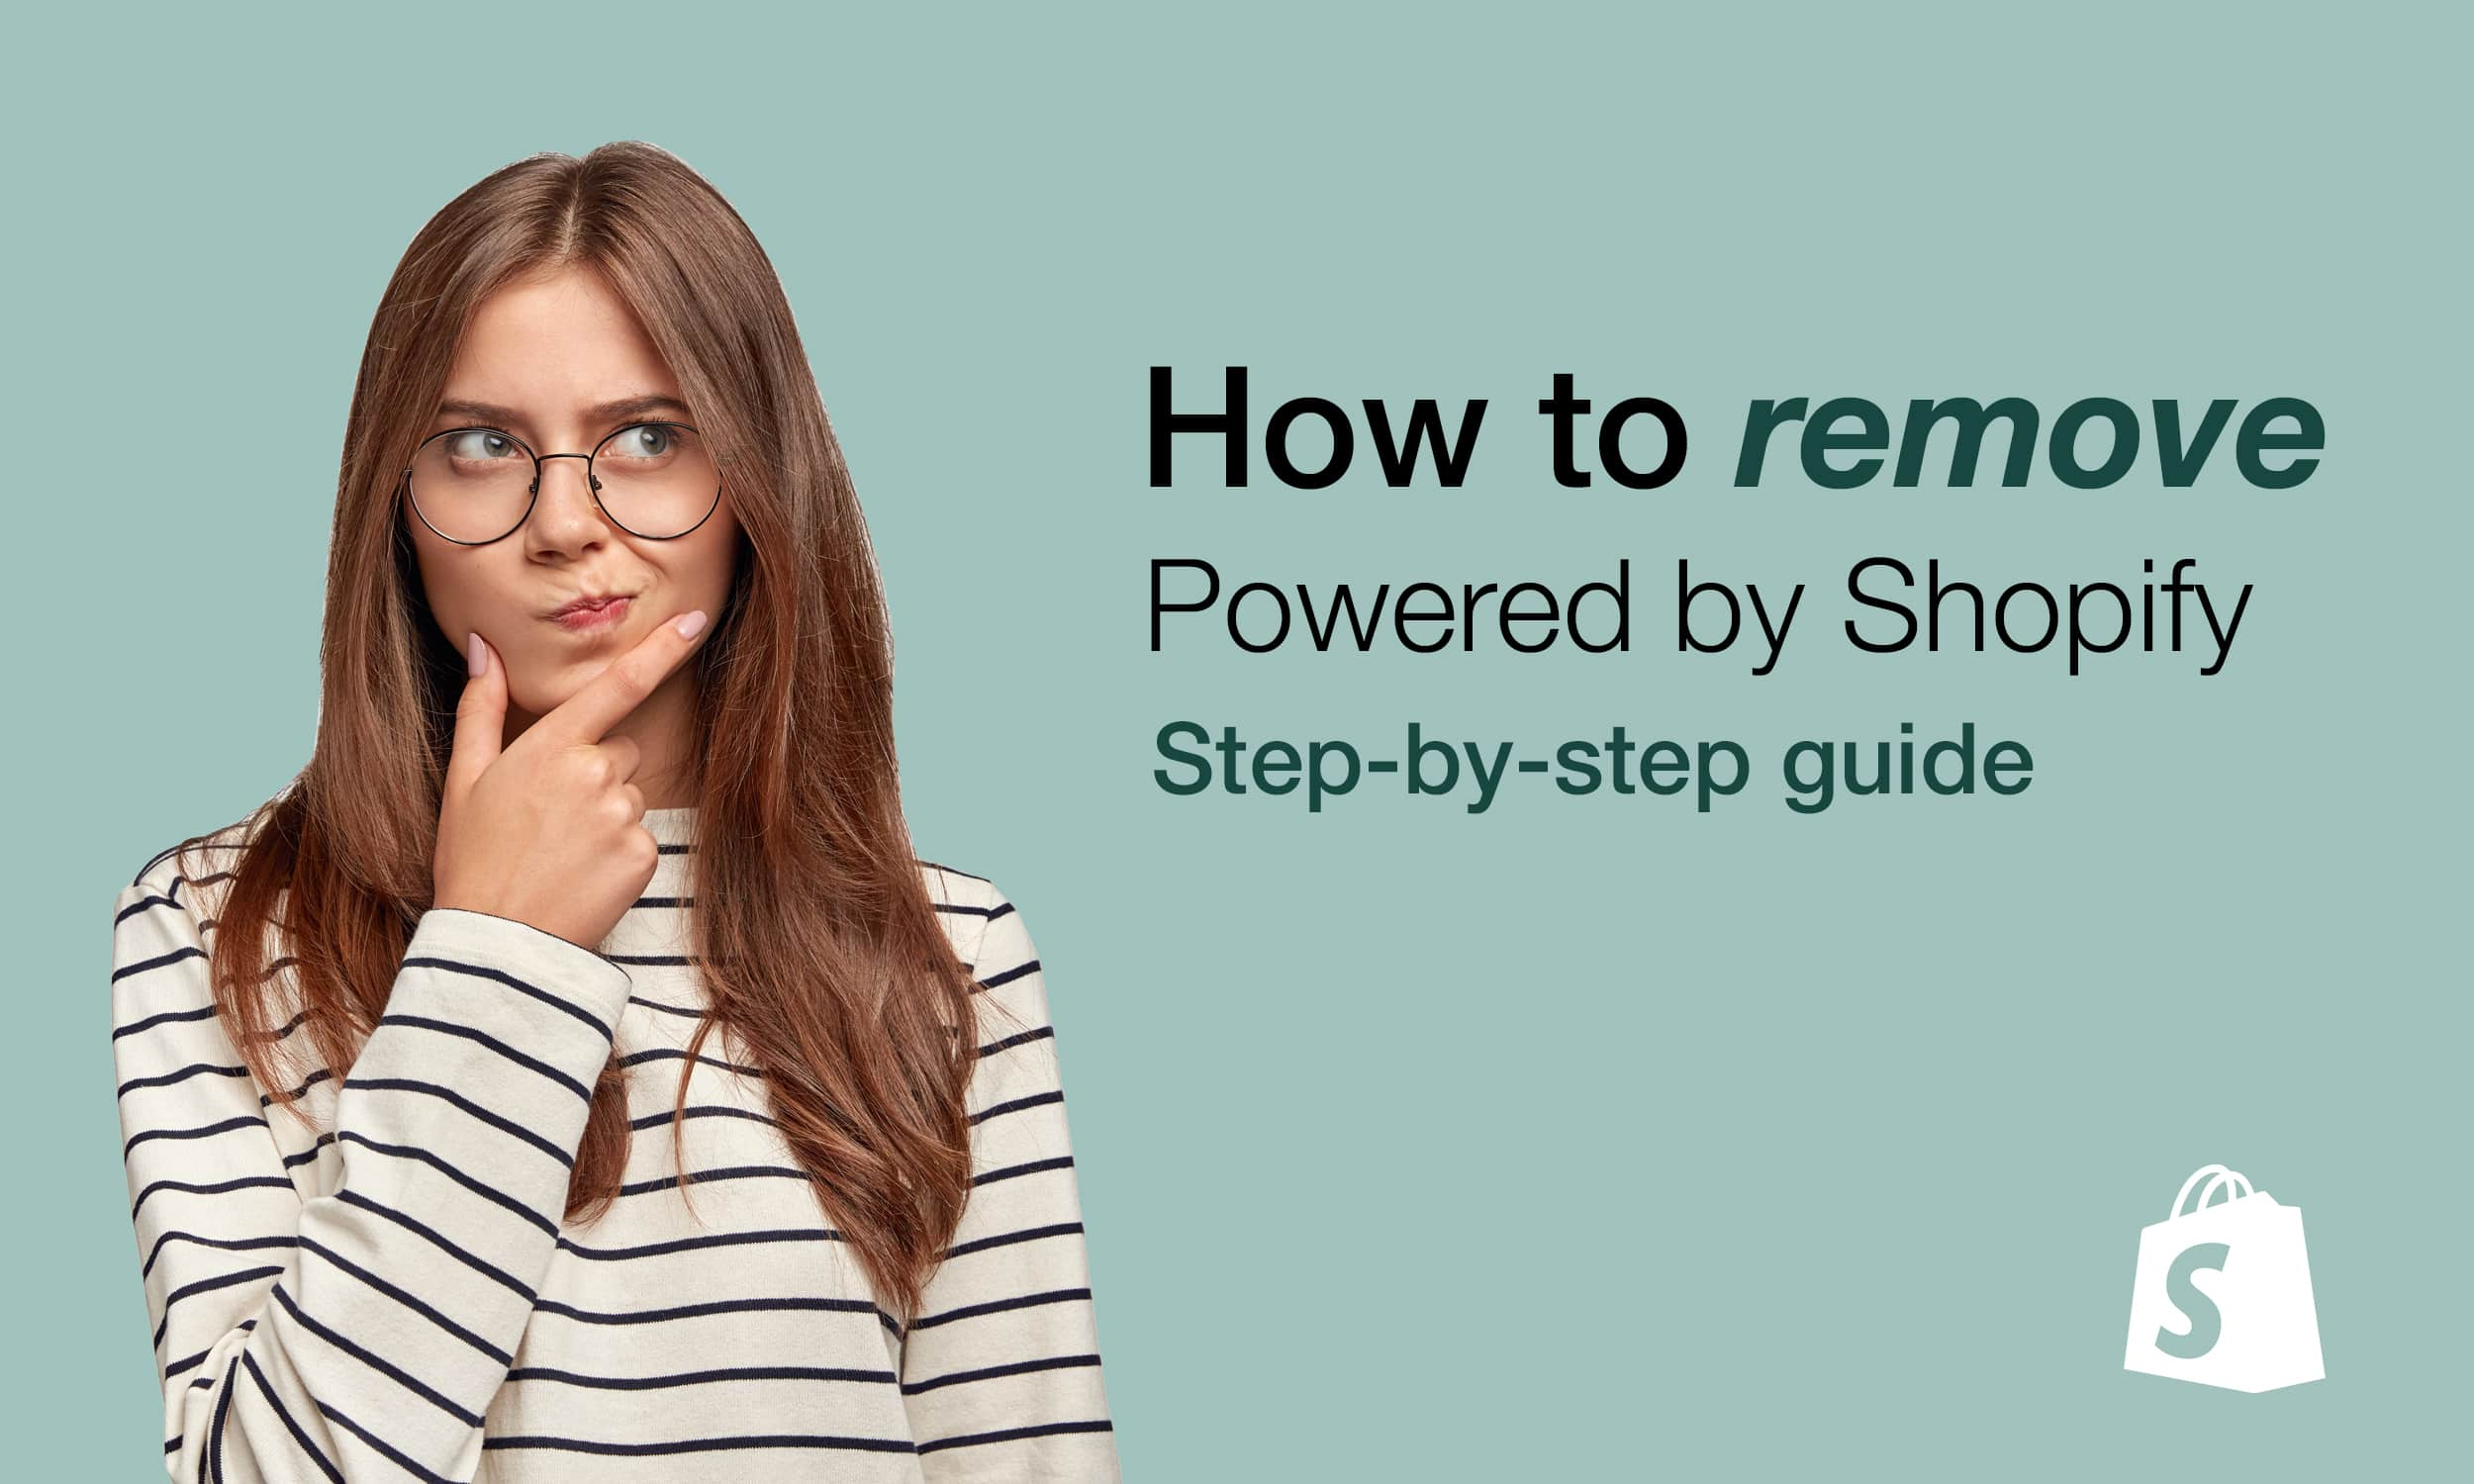 How to simply remove 'powered by Shopify' in 2 easy methods